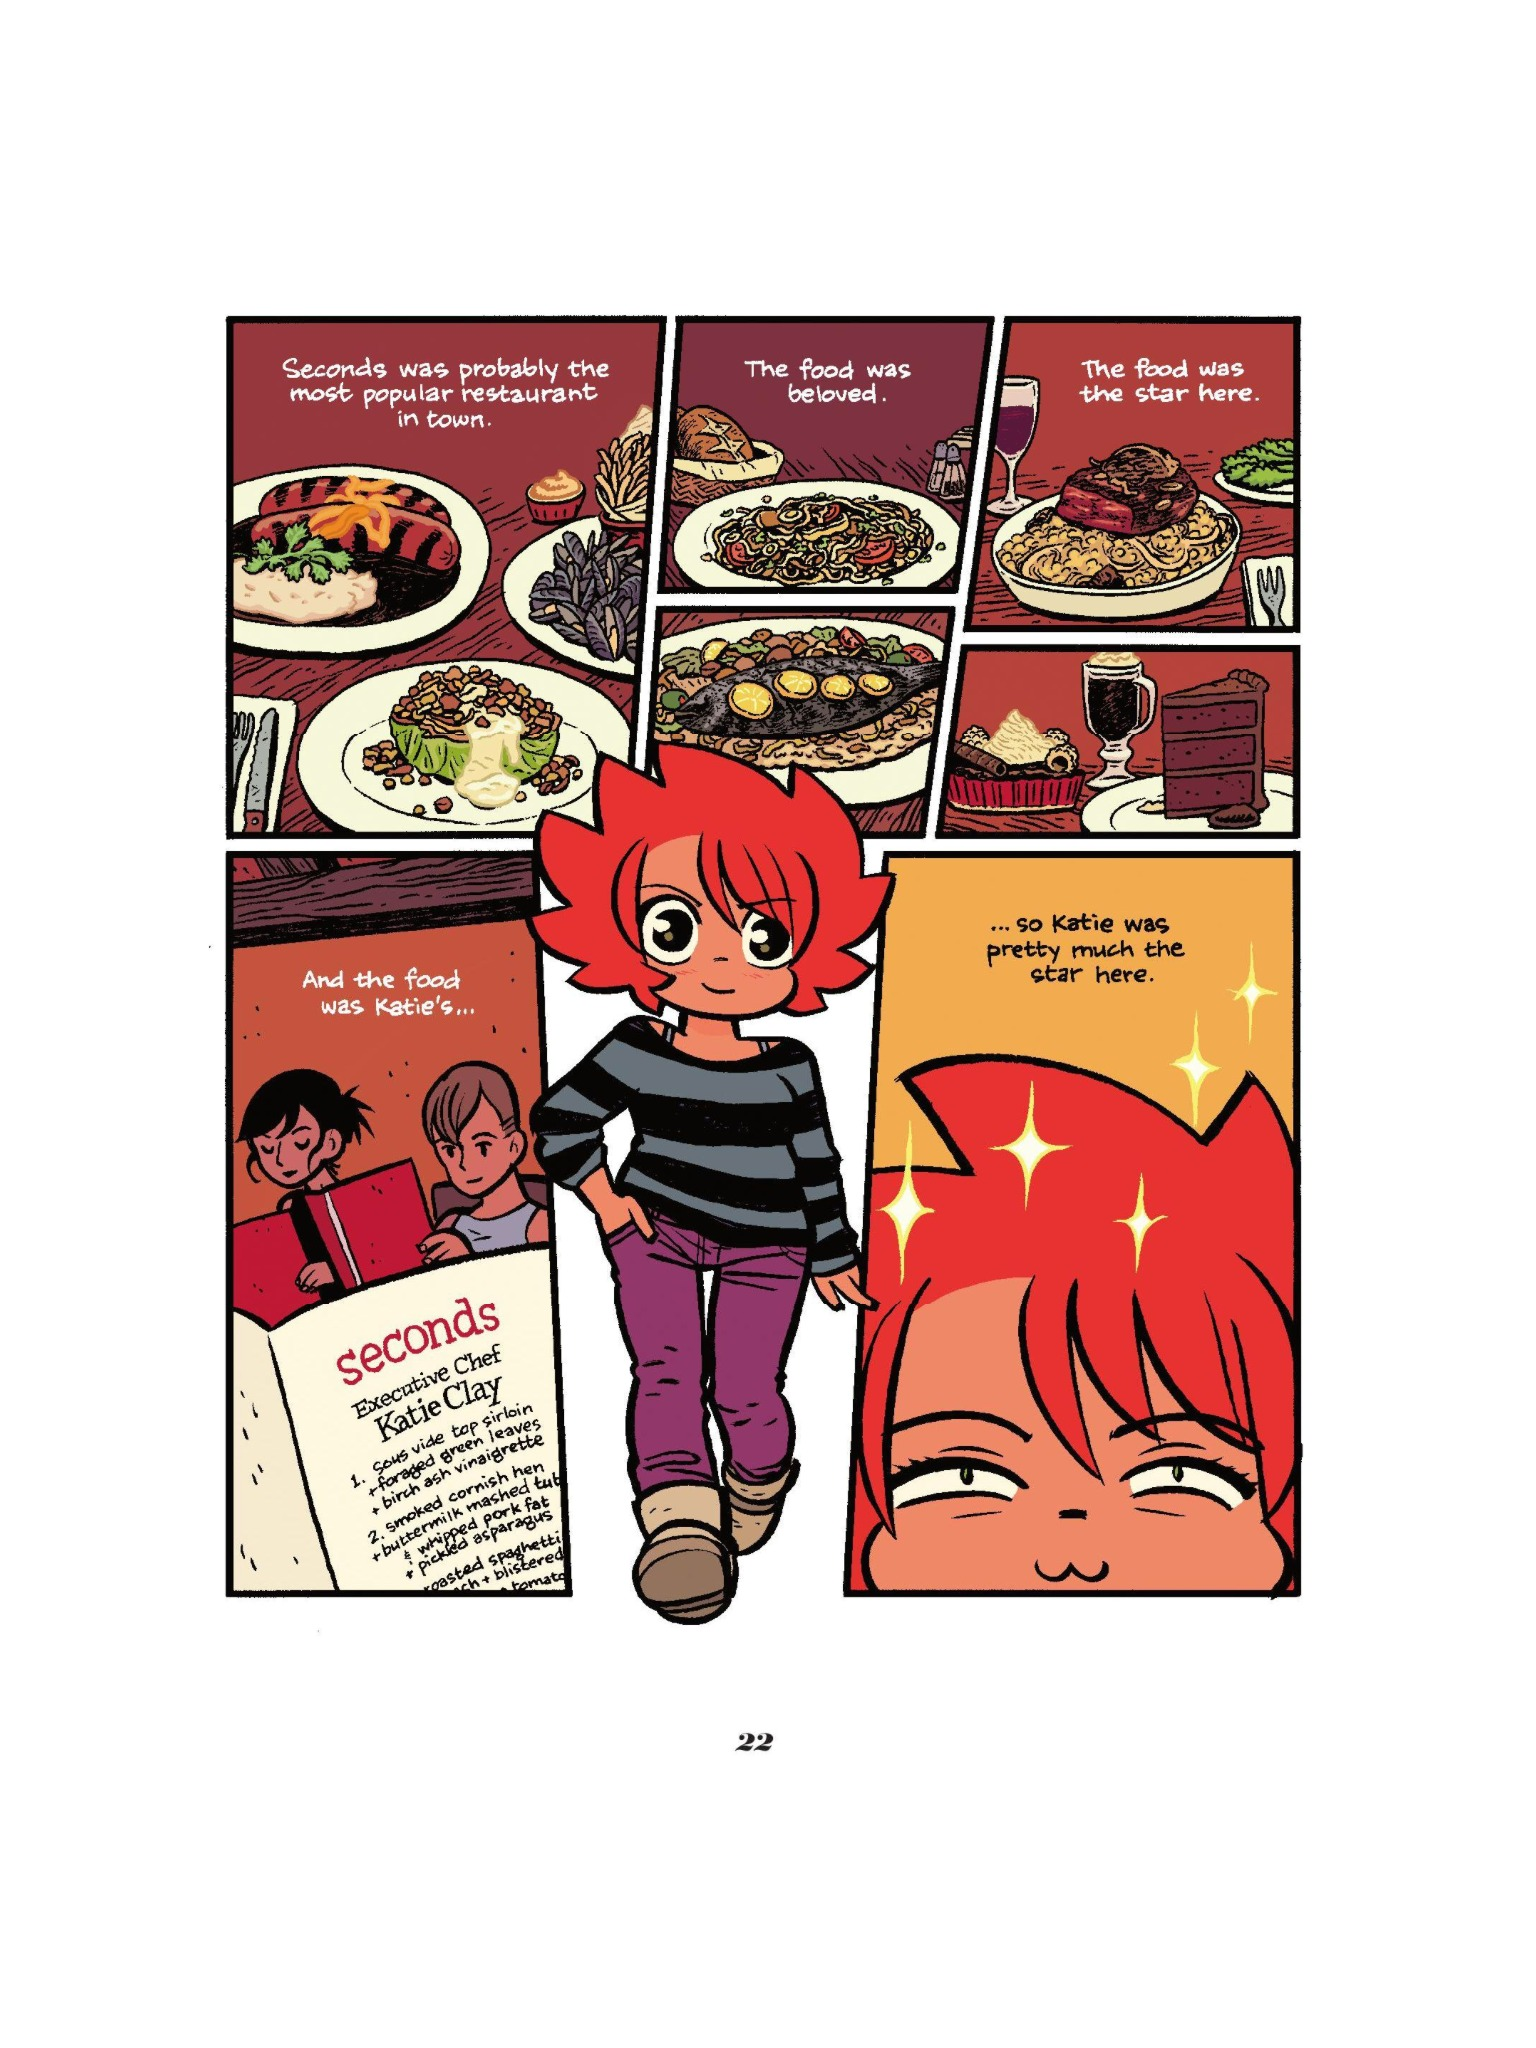 Read online Seconds comic -  Issue # Full - 24